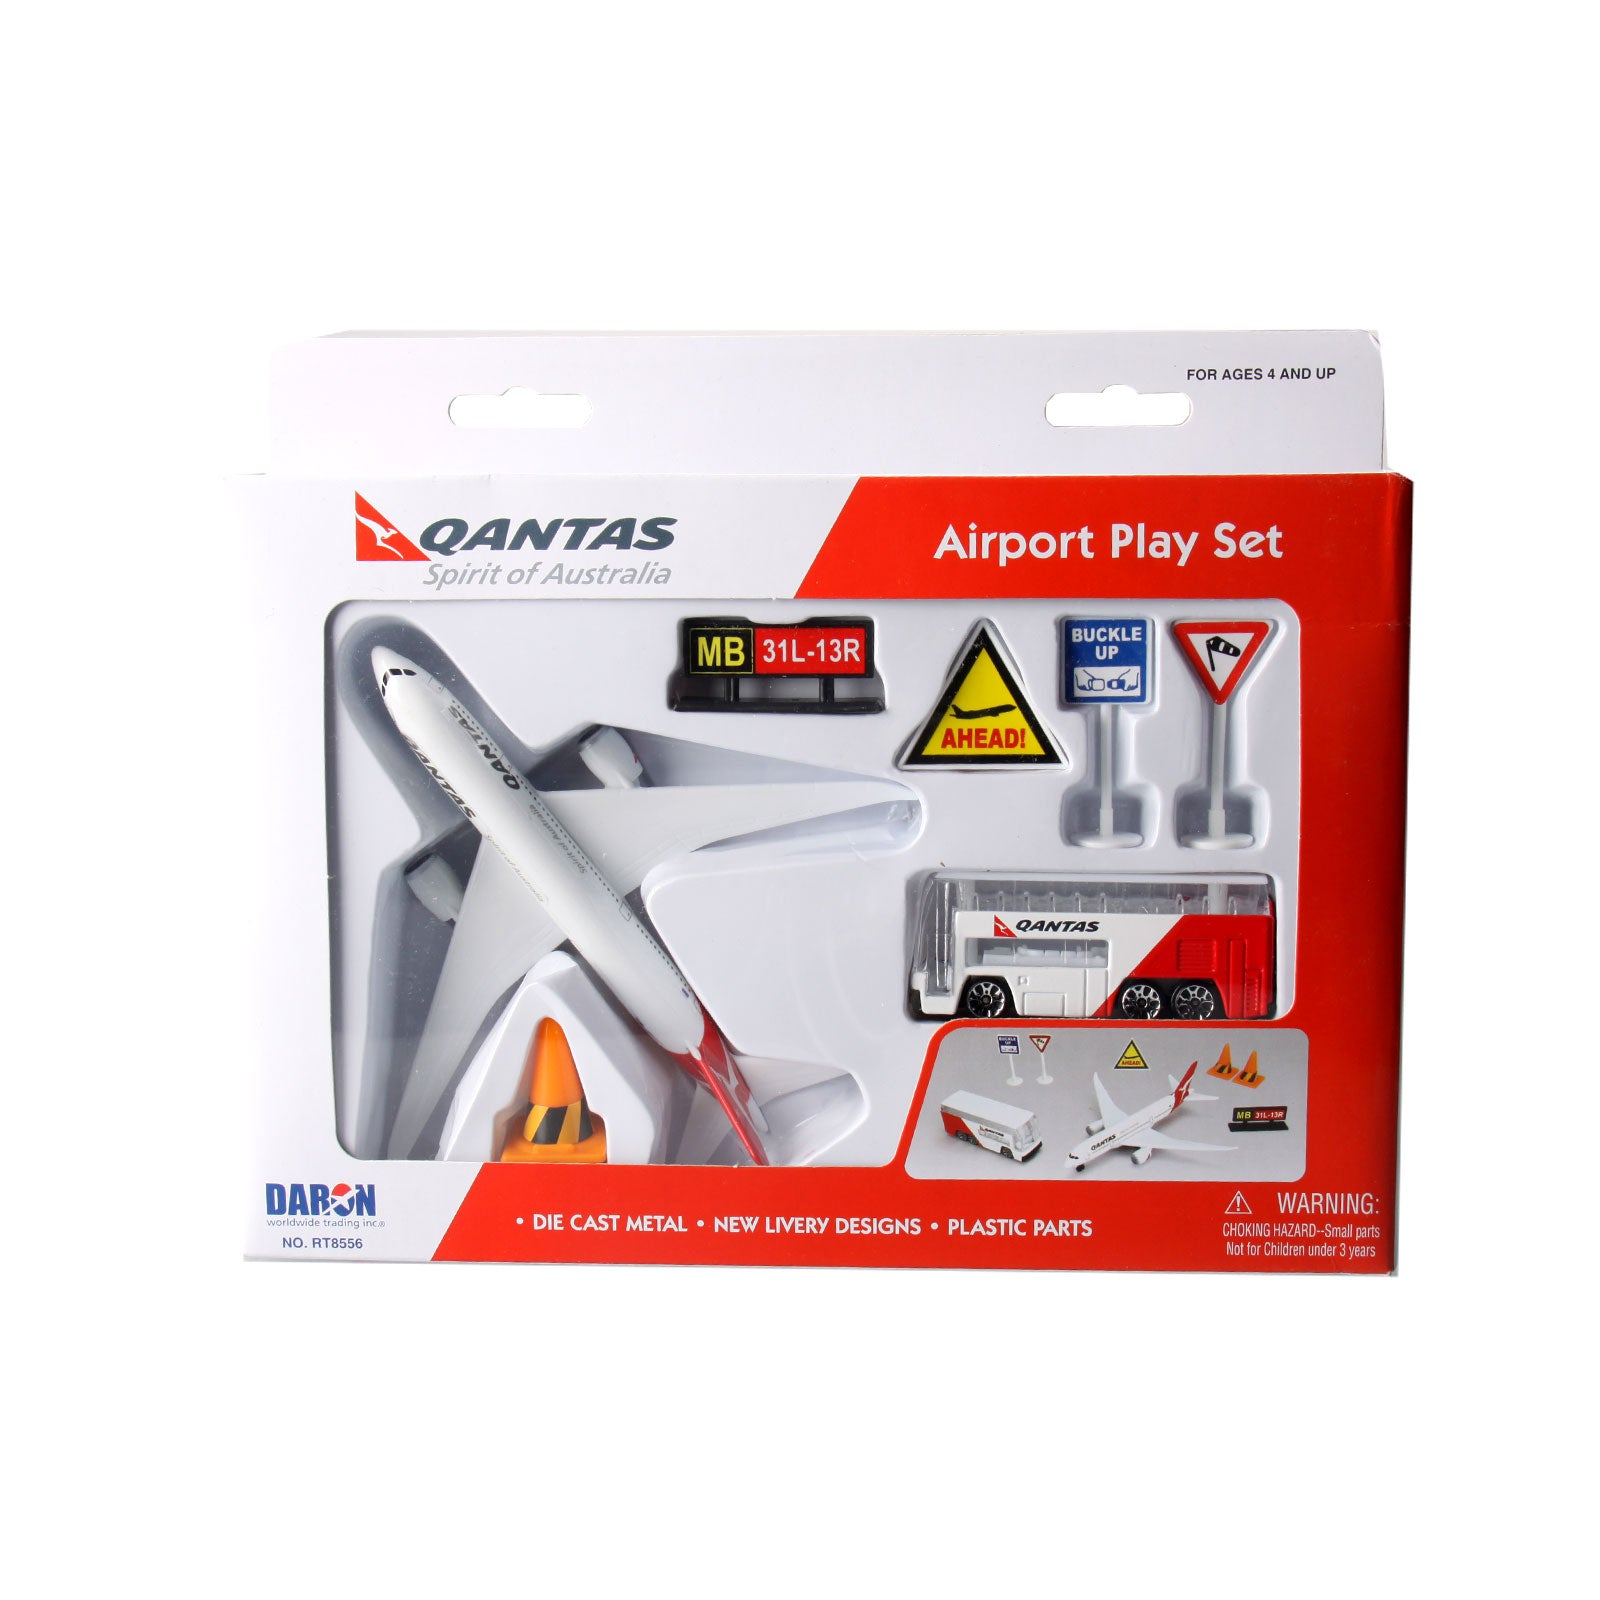 Qantas Airport Play Set